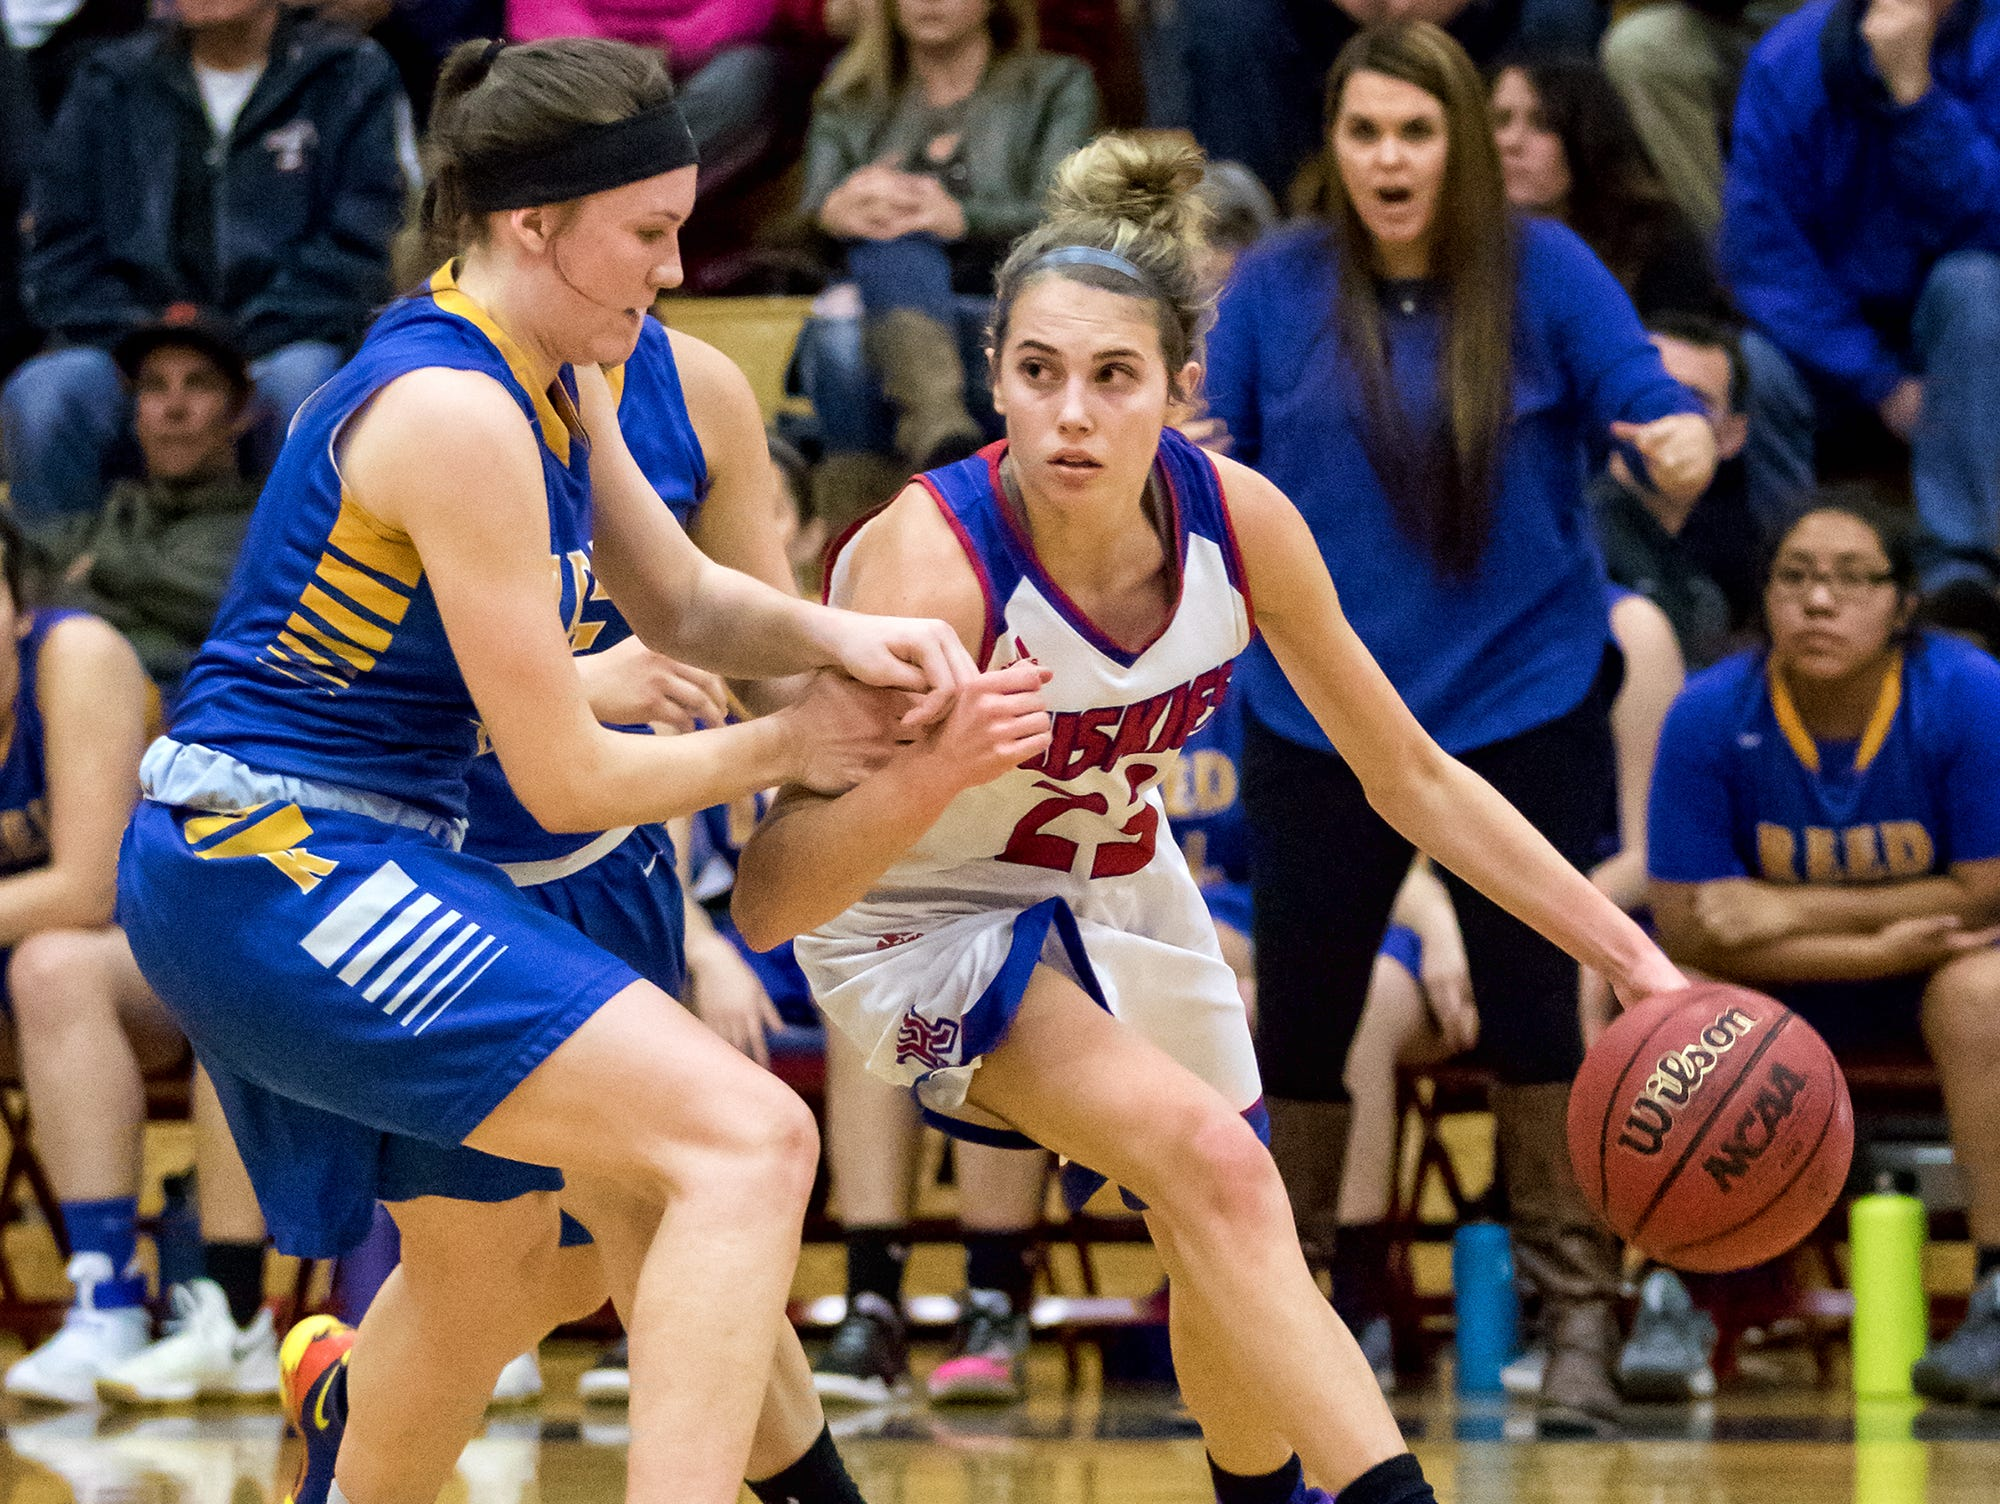 Reno Mikayla Shults drives against Red on FRiday night